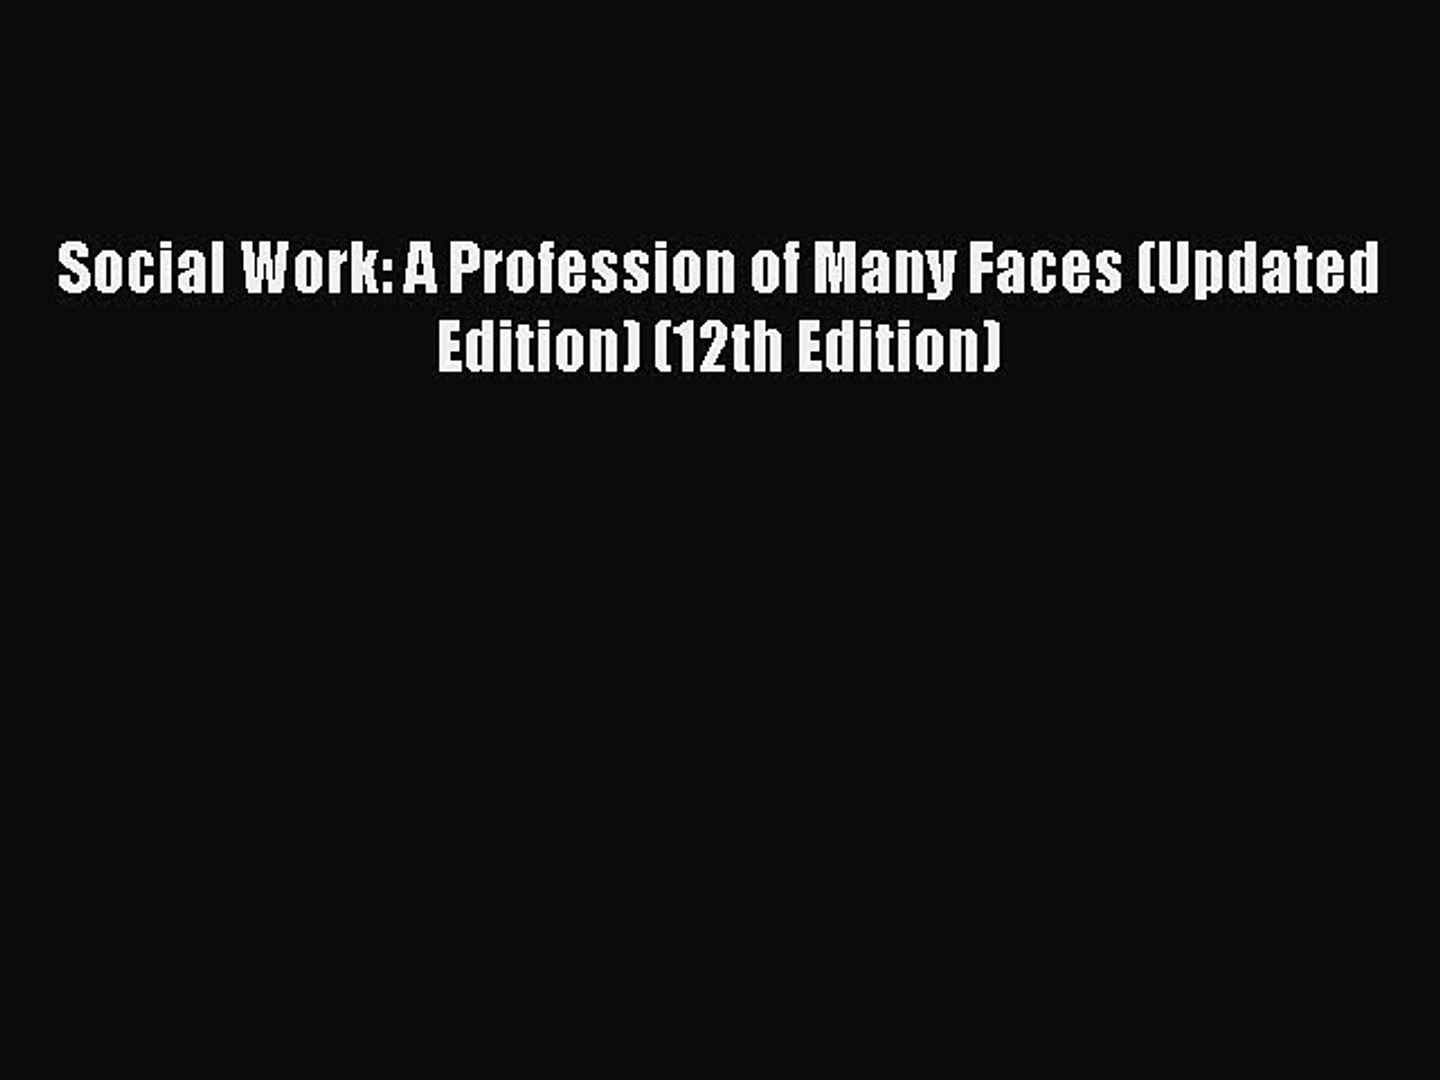 Read Social Work: A Profession of Many Faces (Updated Edition) (12th Edition) Ebook Free